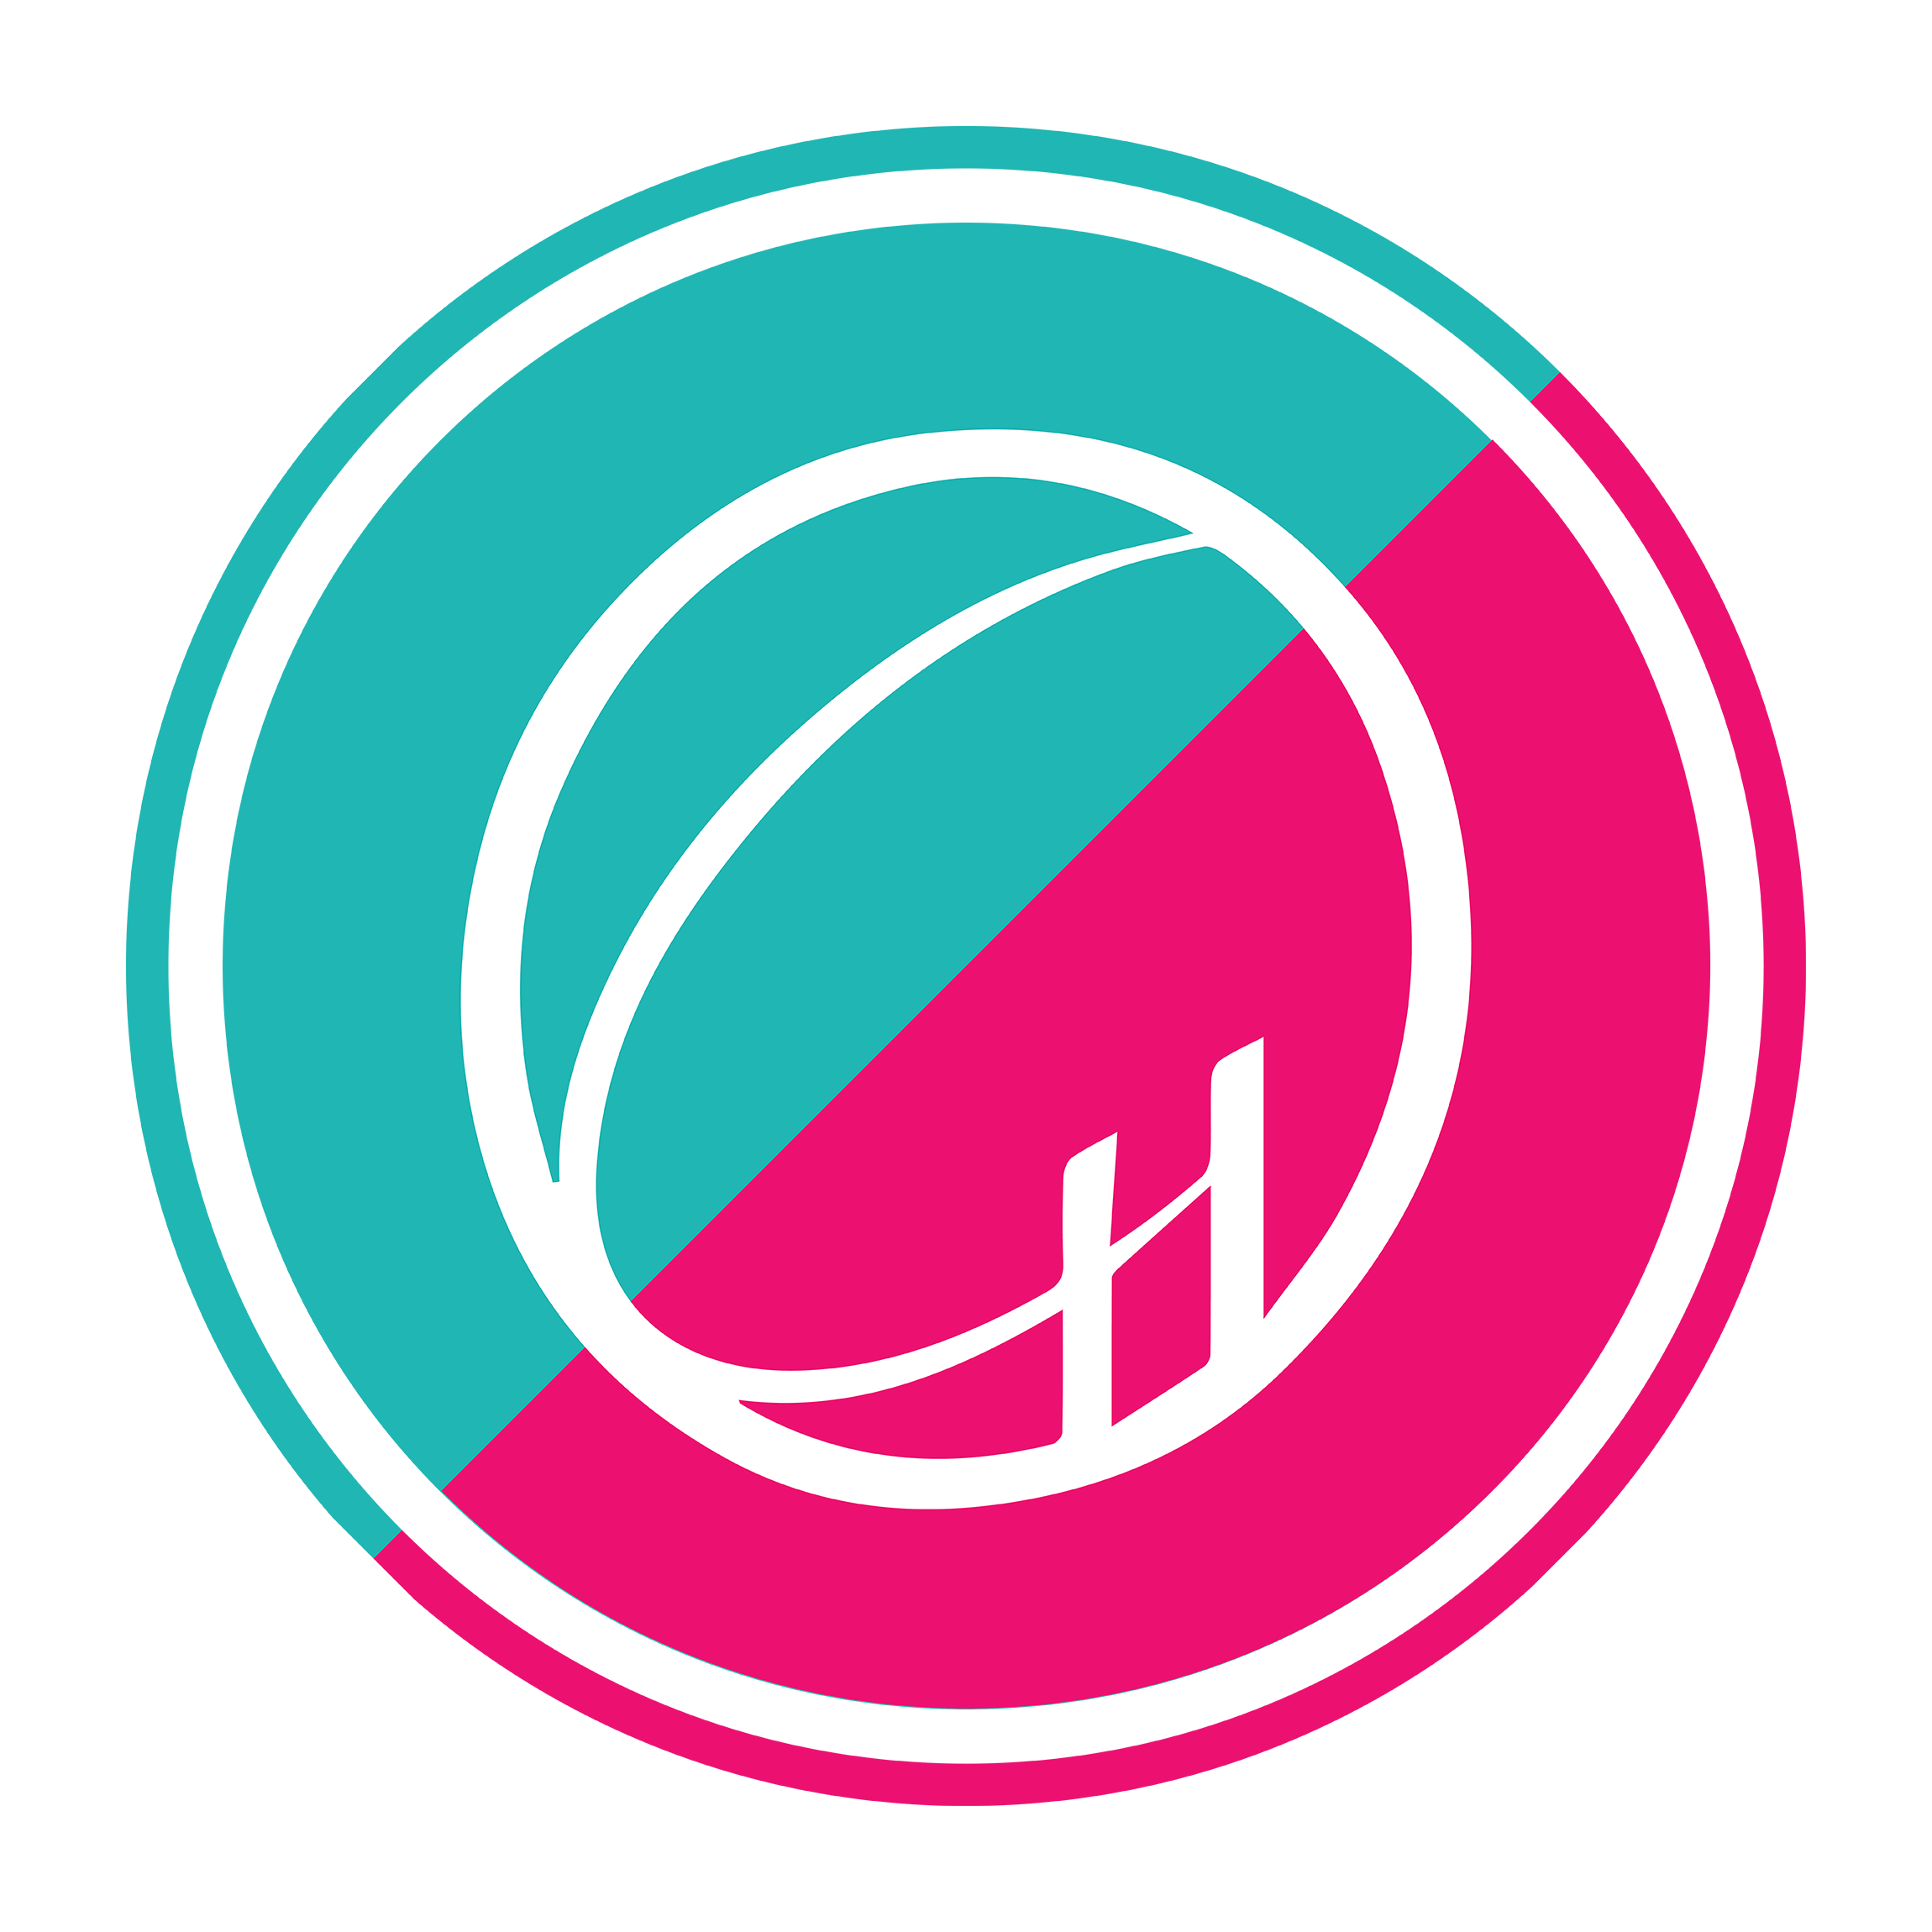 Pink and teal Ontario Hall logo